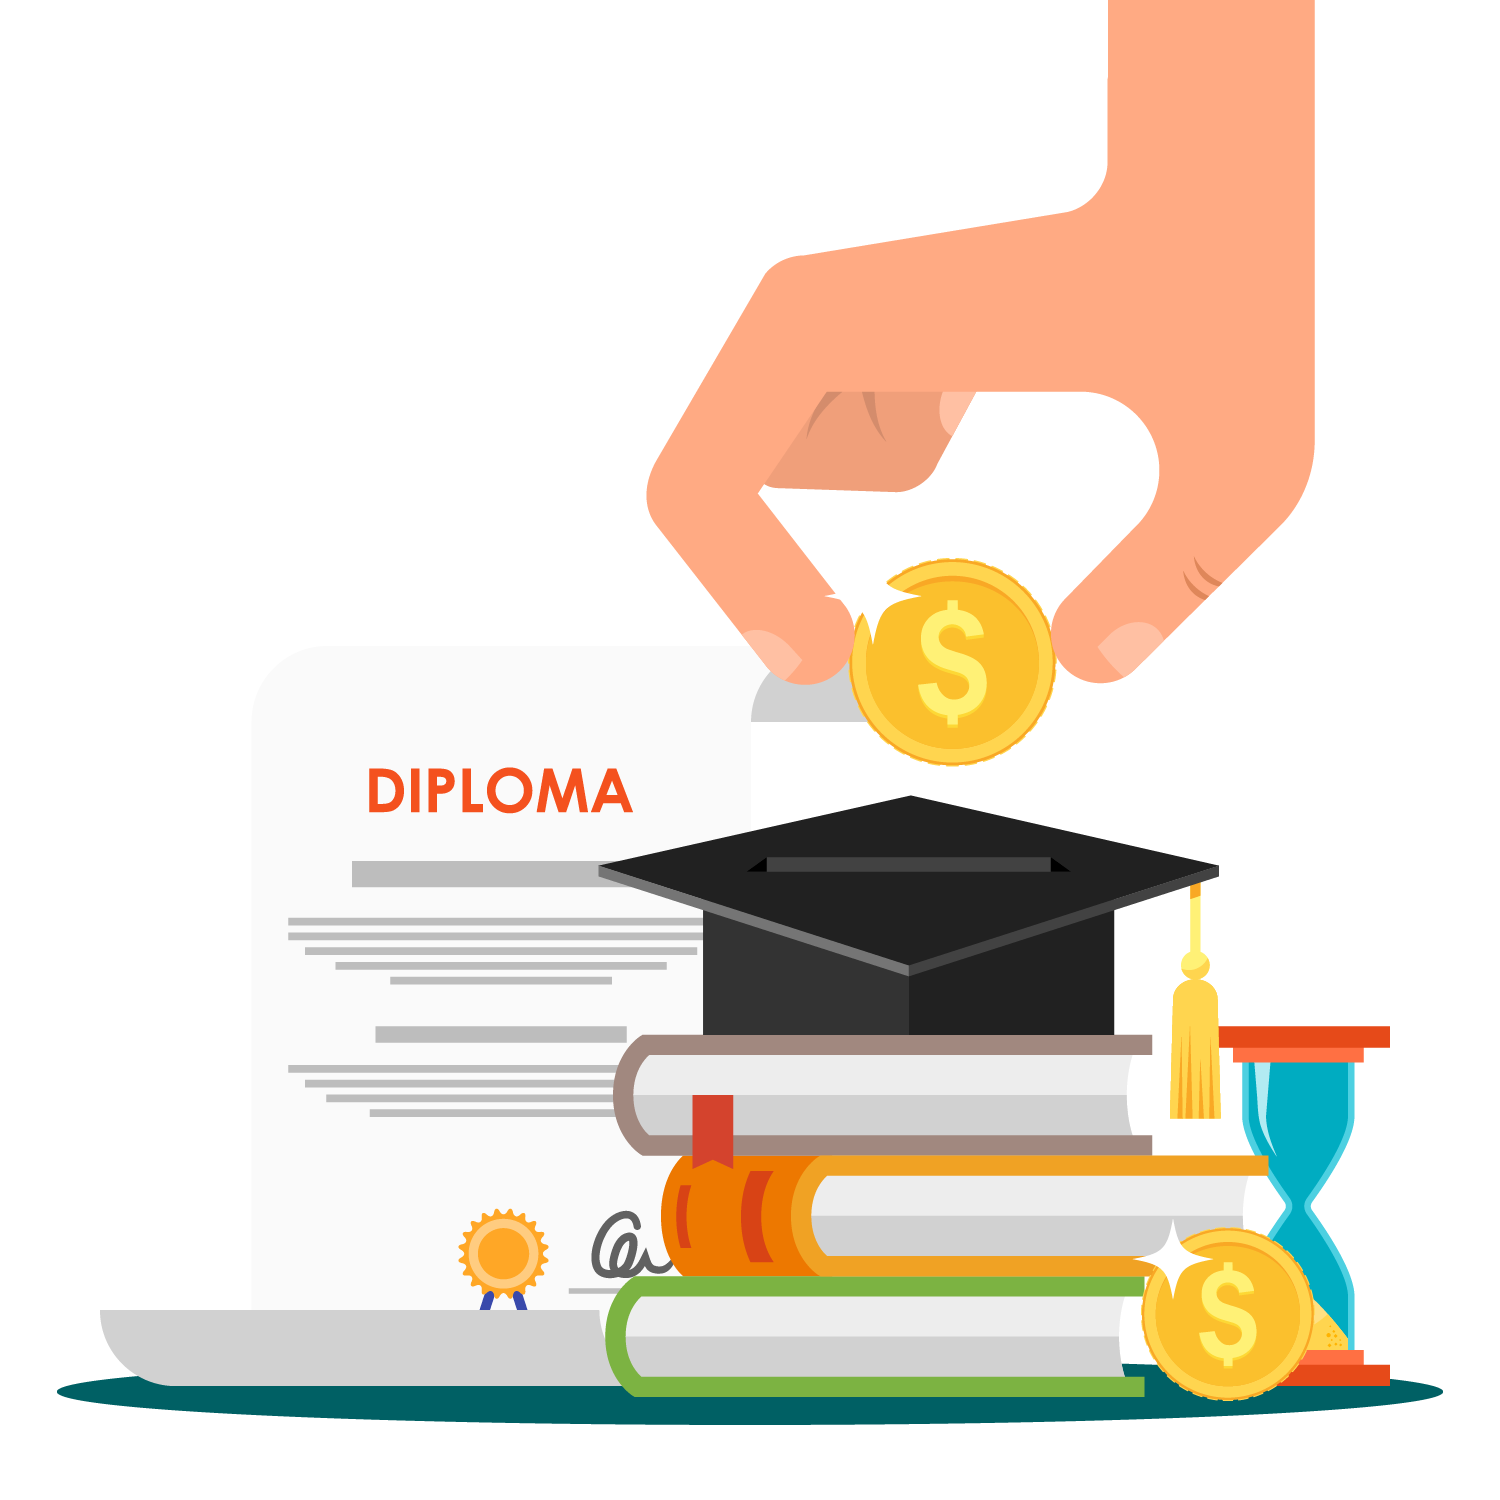 Don t miss the. Diploma clipart scholarship